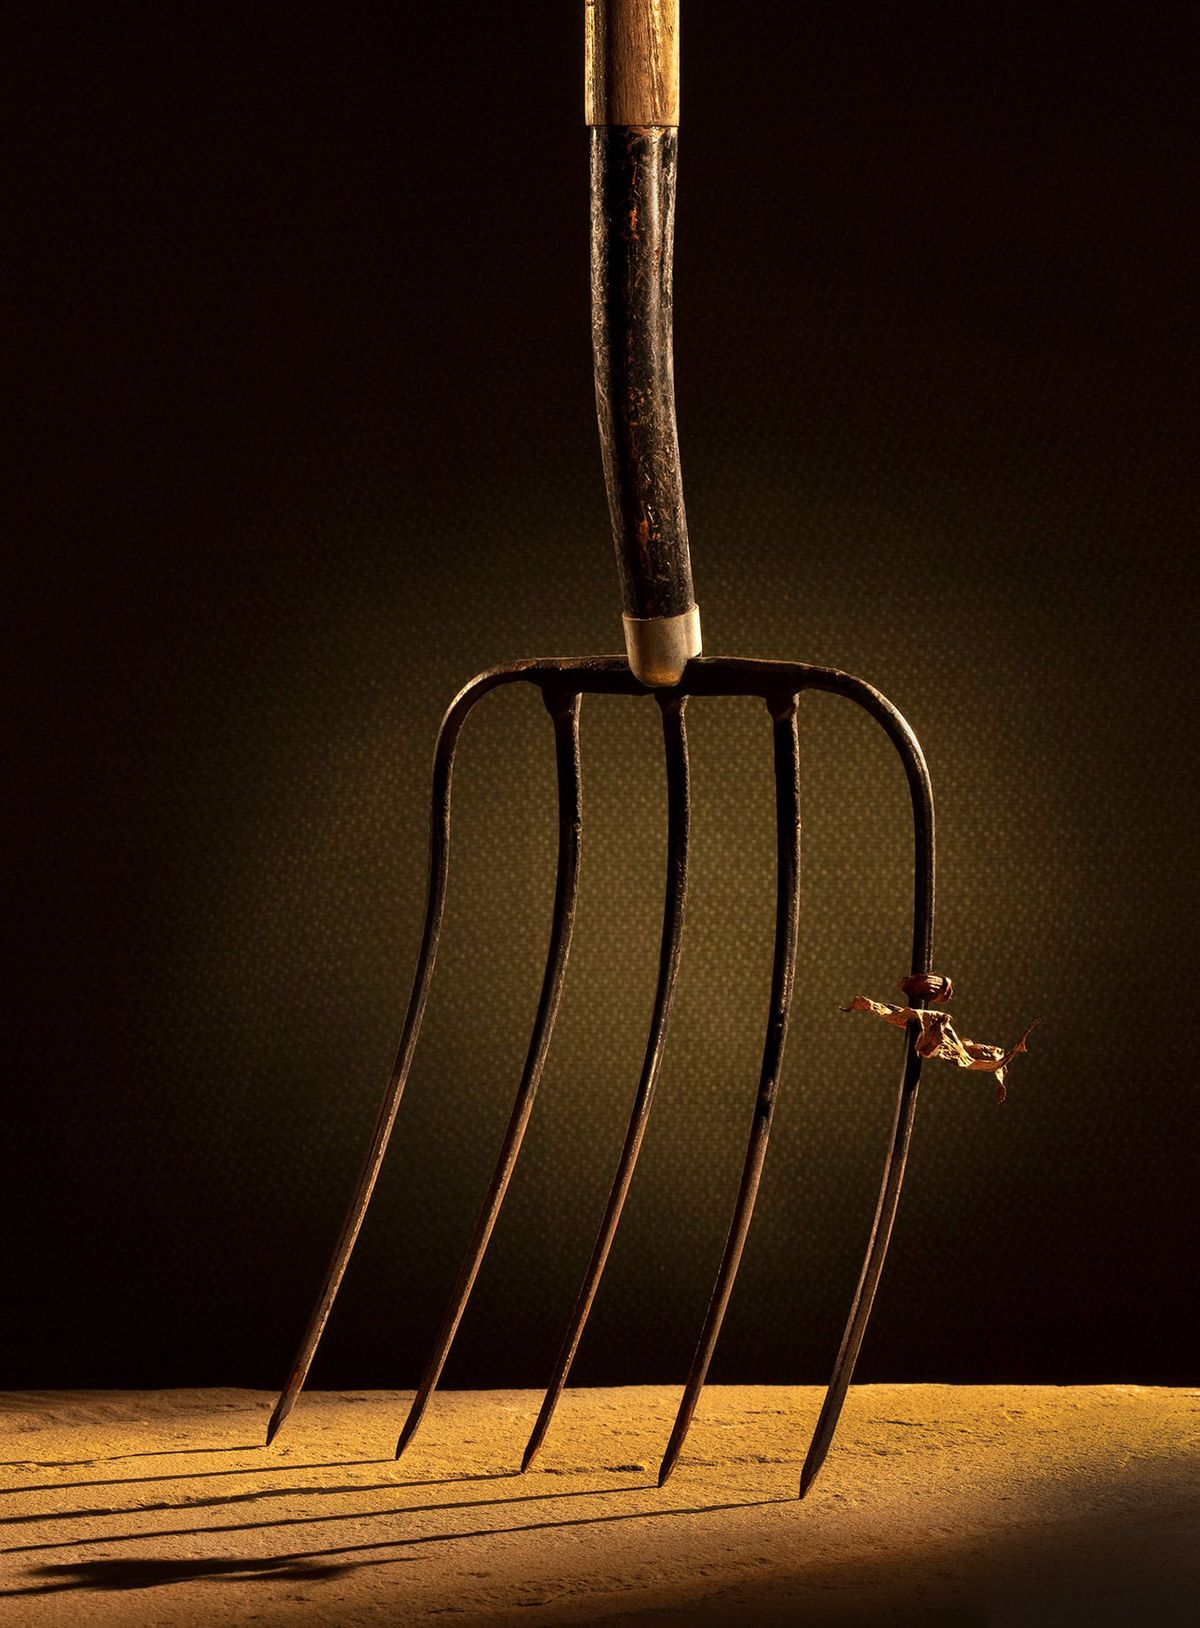 Pitchfork,patina,tools,old tools,design